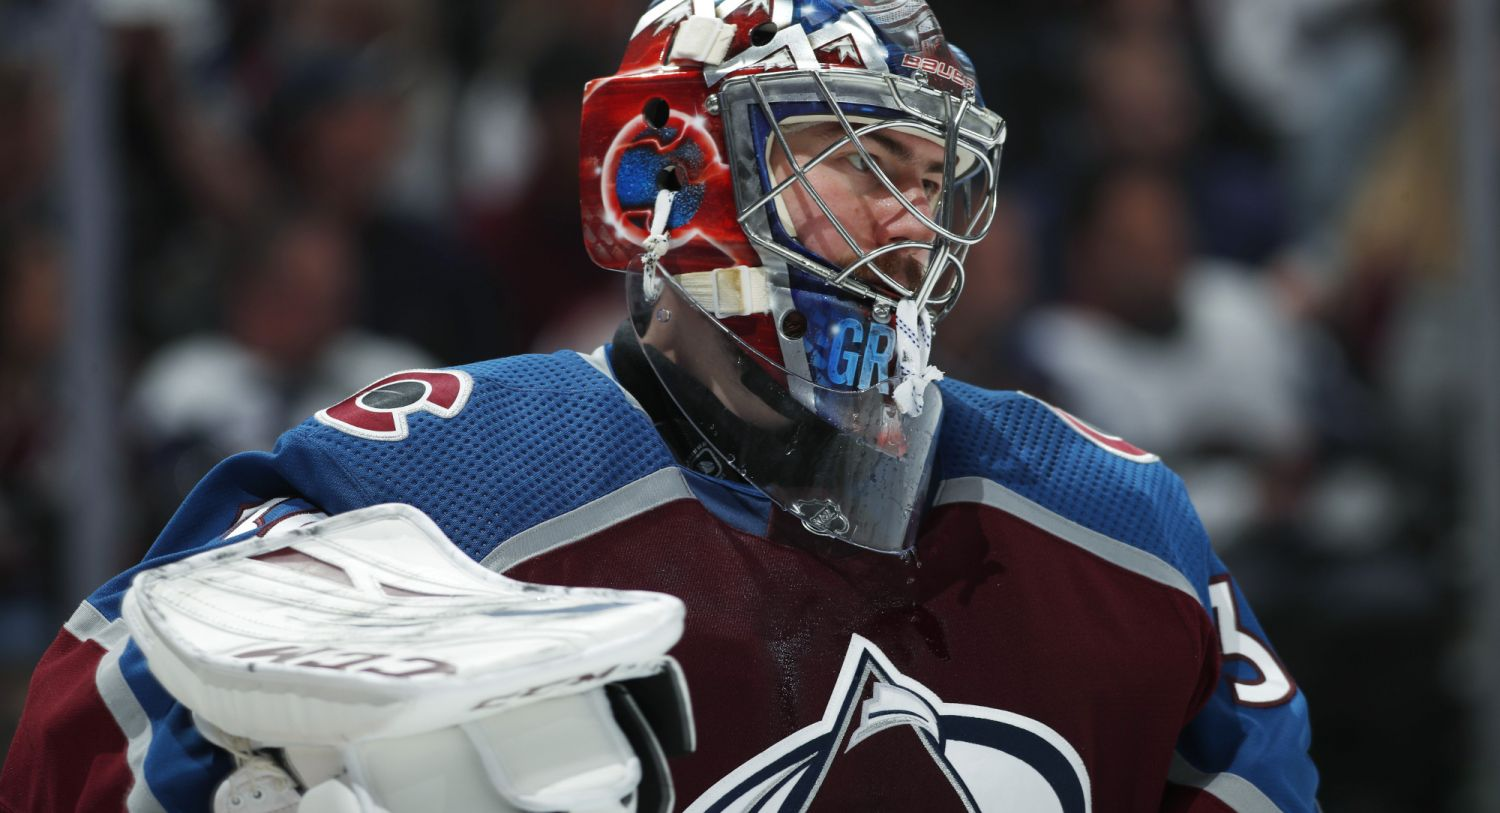 Torhüter Philipp Grubauer bei den Colorado Avalanche. (Foto: dpa/picture alliance/AP Images)